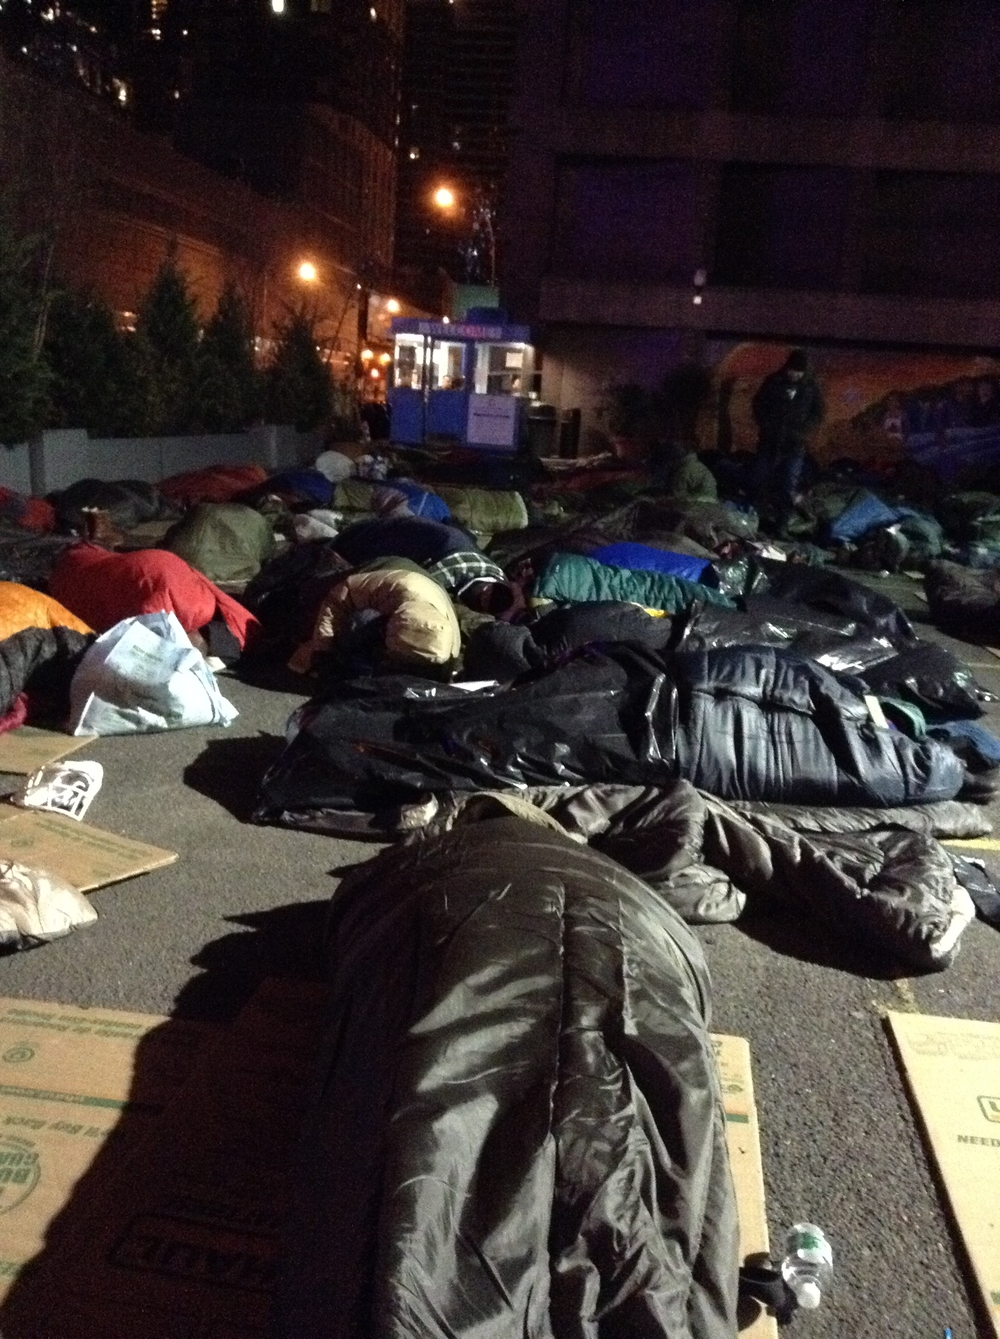 Business execs sleeping out in a NYC Parking lot - surreal!